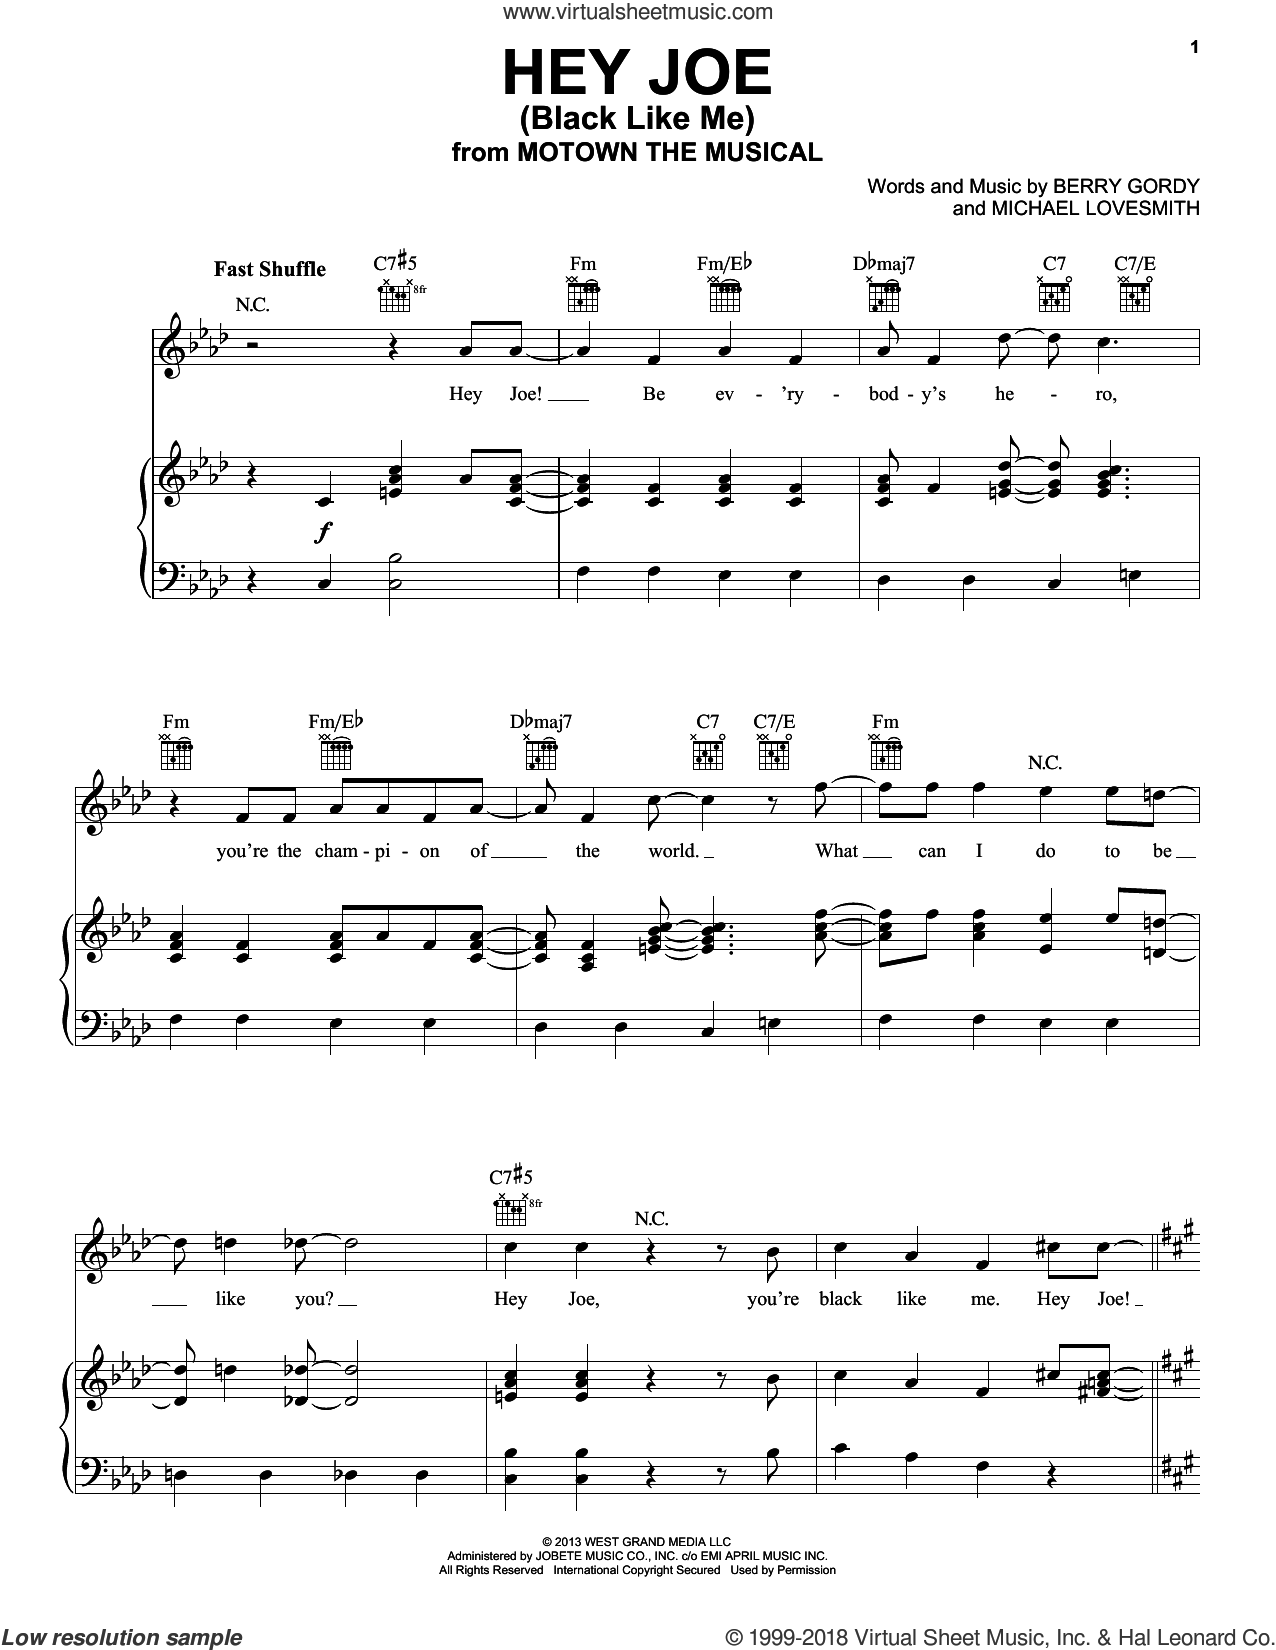 Hey Joe (Black Like Me) sheet music for voice, piano or guitar by Berry Gordy